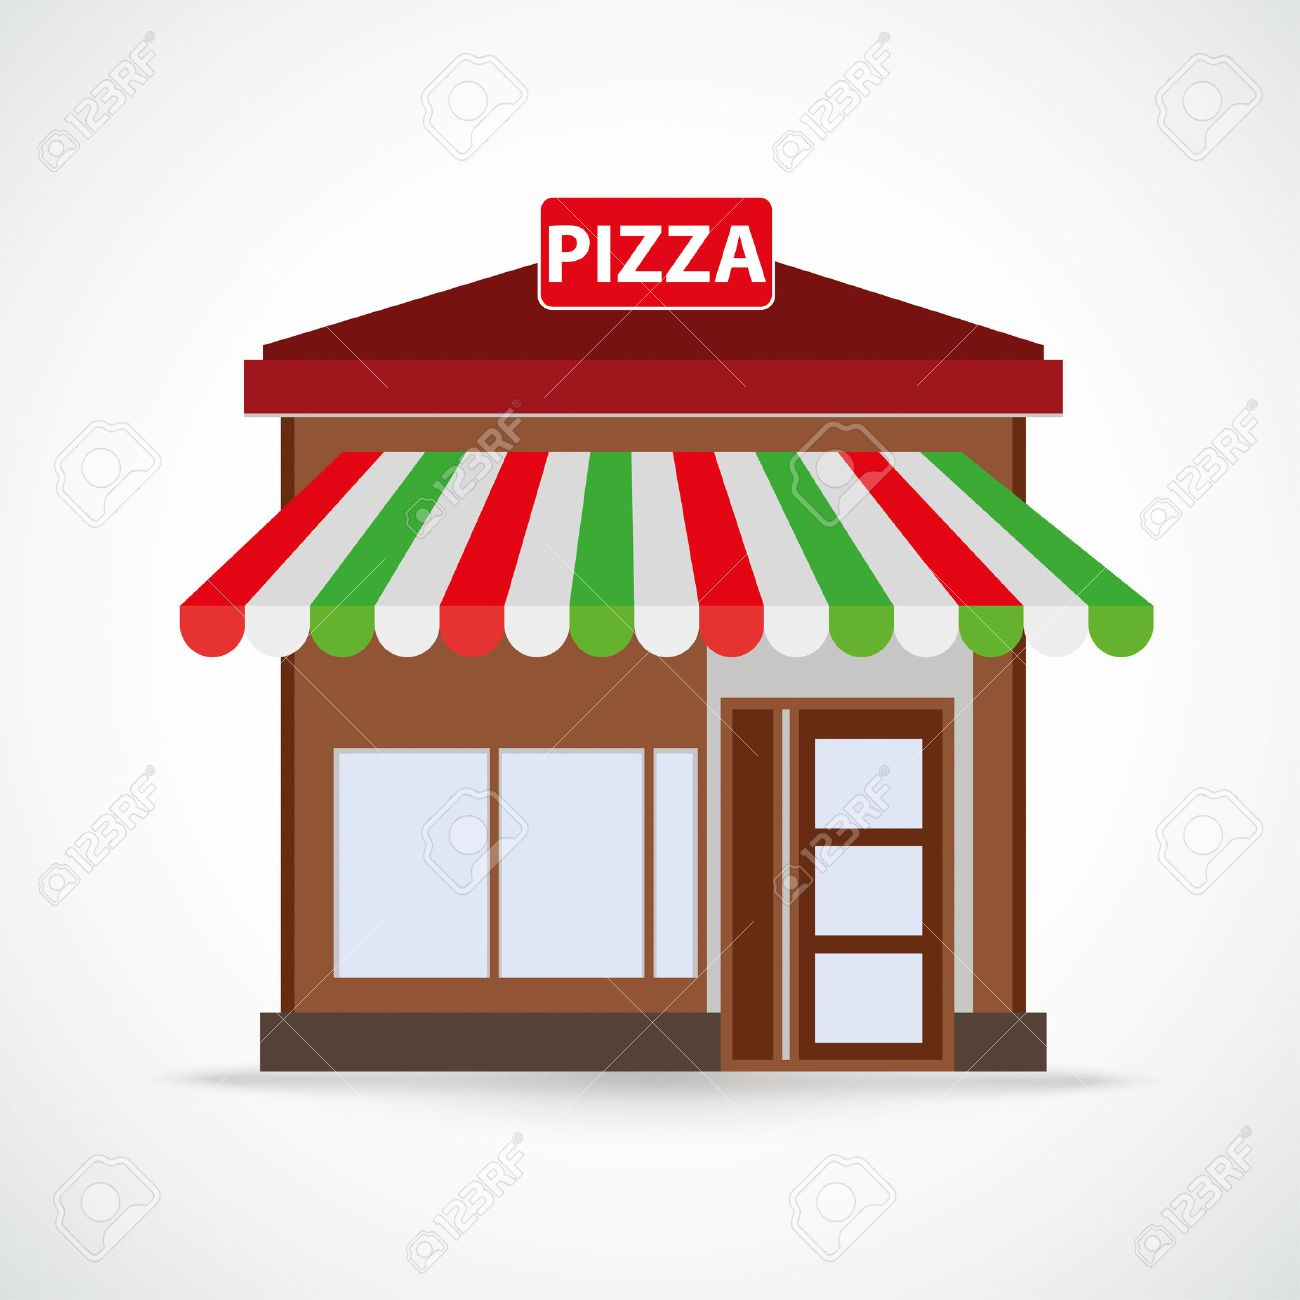 For restaurant pictures graphics illustrations clipart photos - Pizza Restaurant Building On The Gray Background Eps 10 Vector File Stock Vector